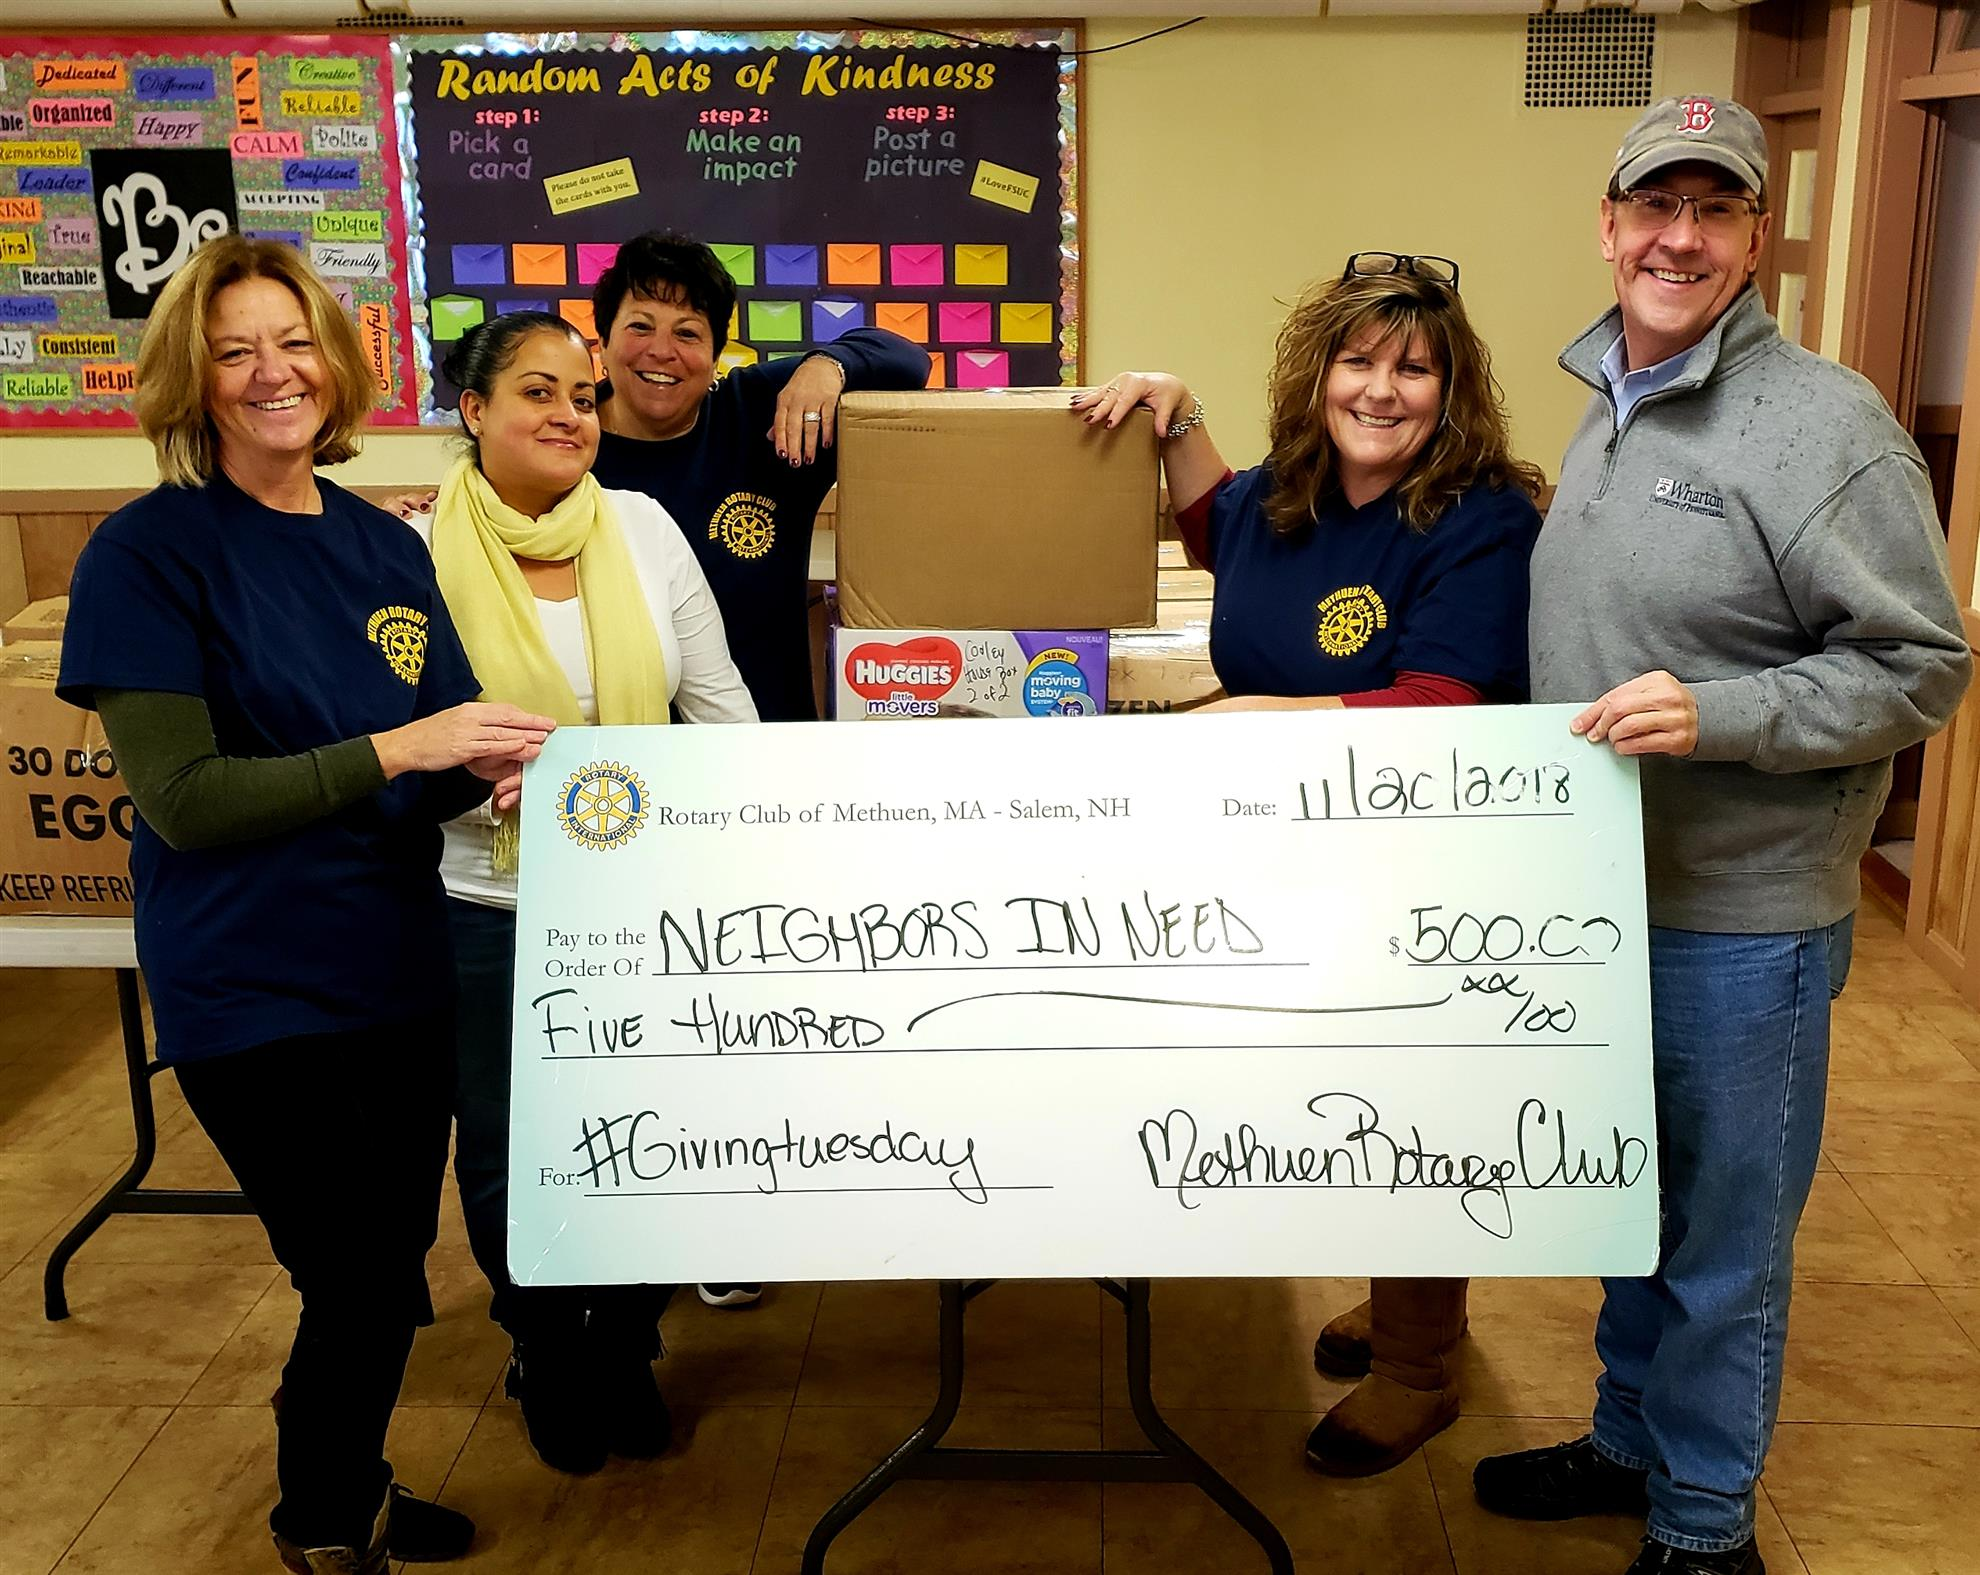 #givingtuesday | Rotary Club of Methuen